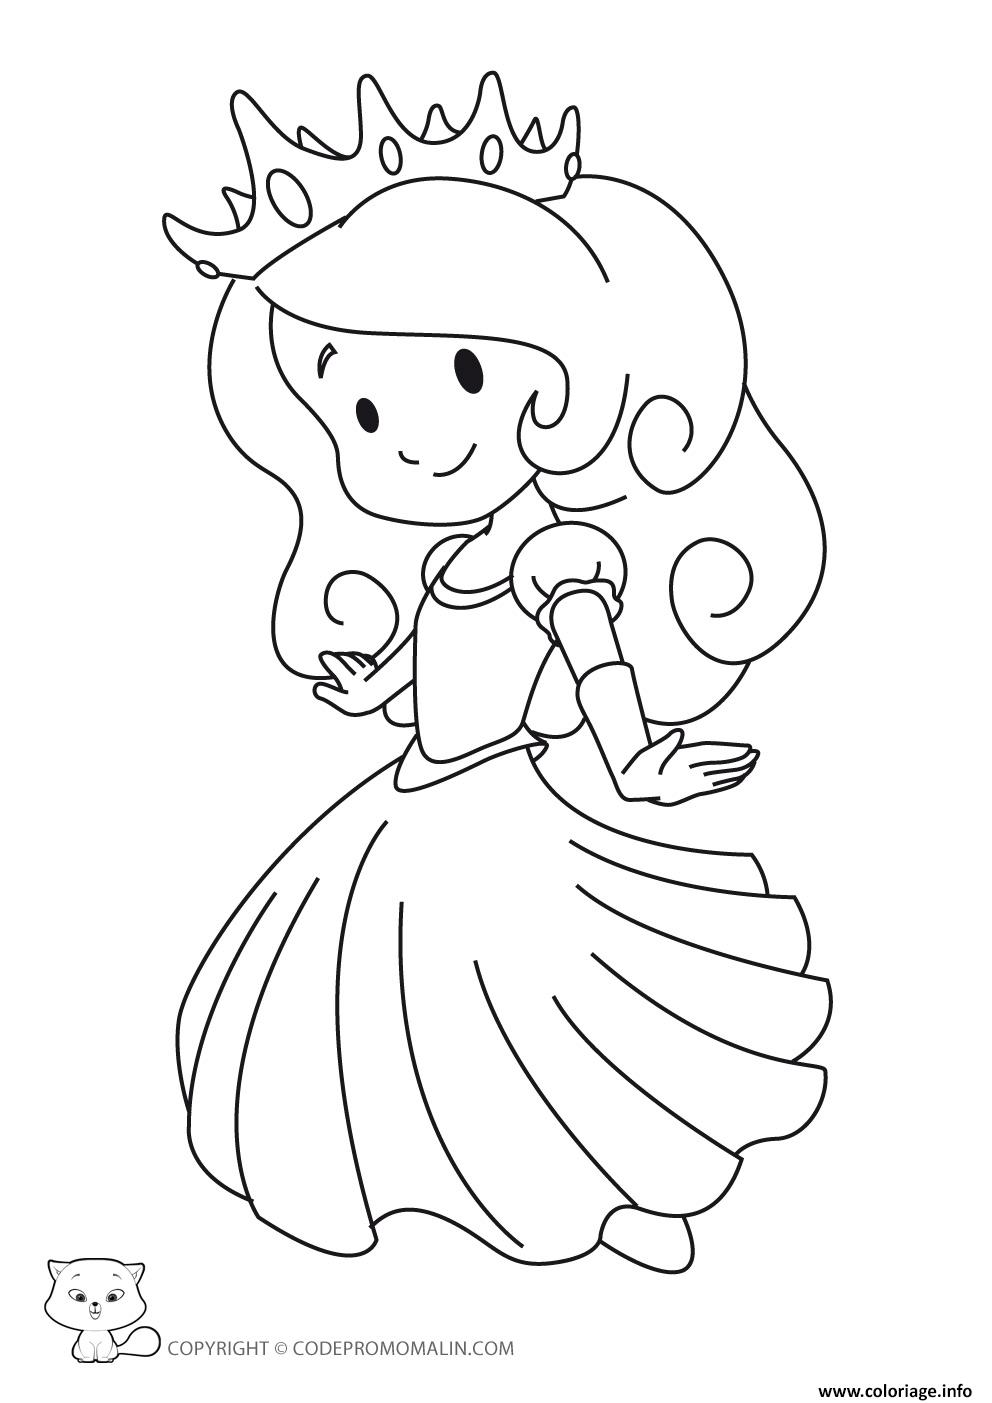 Coloriage disney princesse 60 dessin - Disney princesse coloriage ...